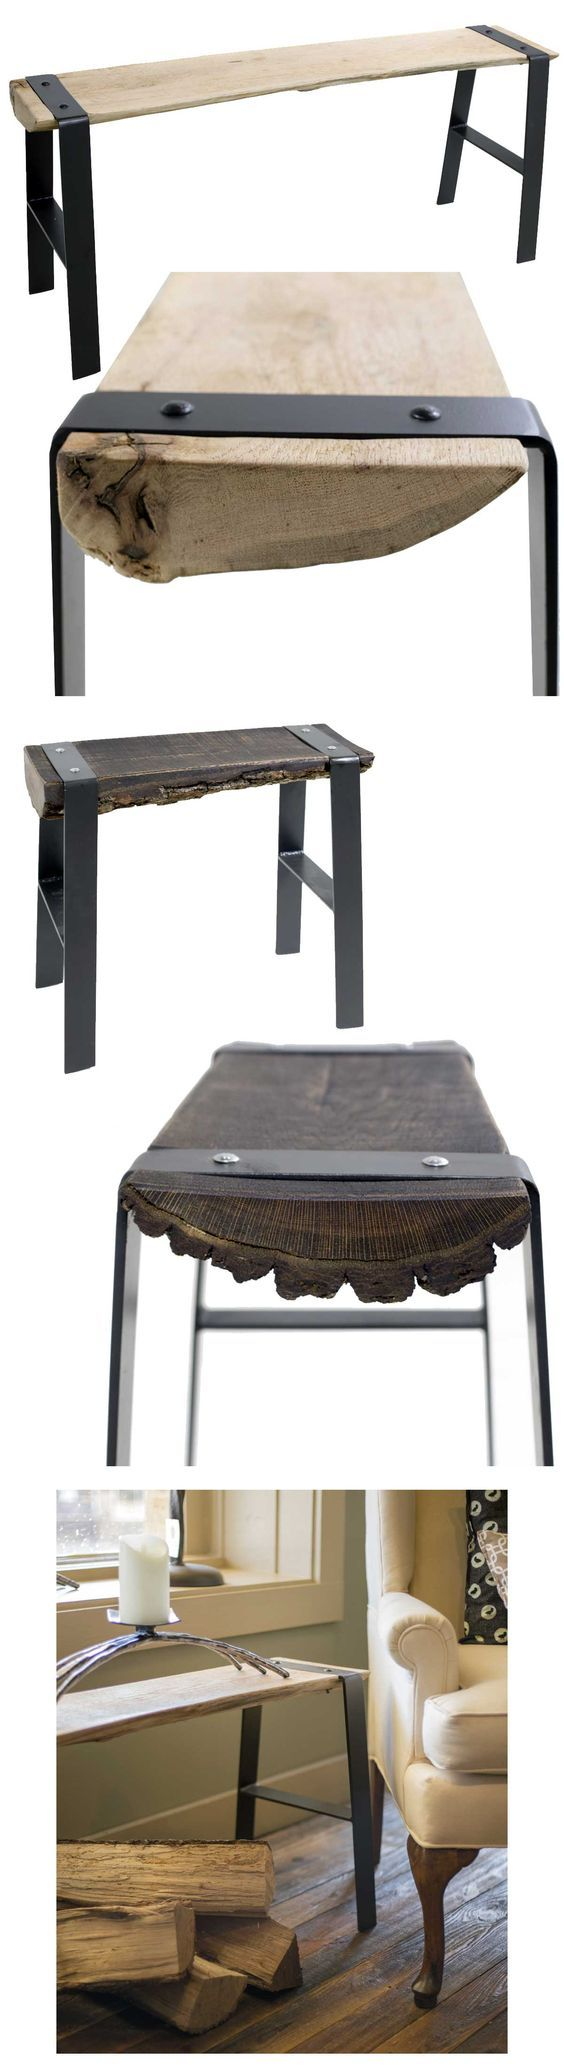 Urban Forge 42-inch Iron Bench